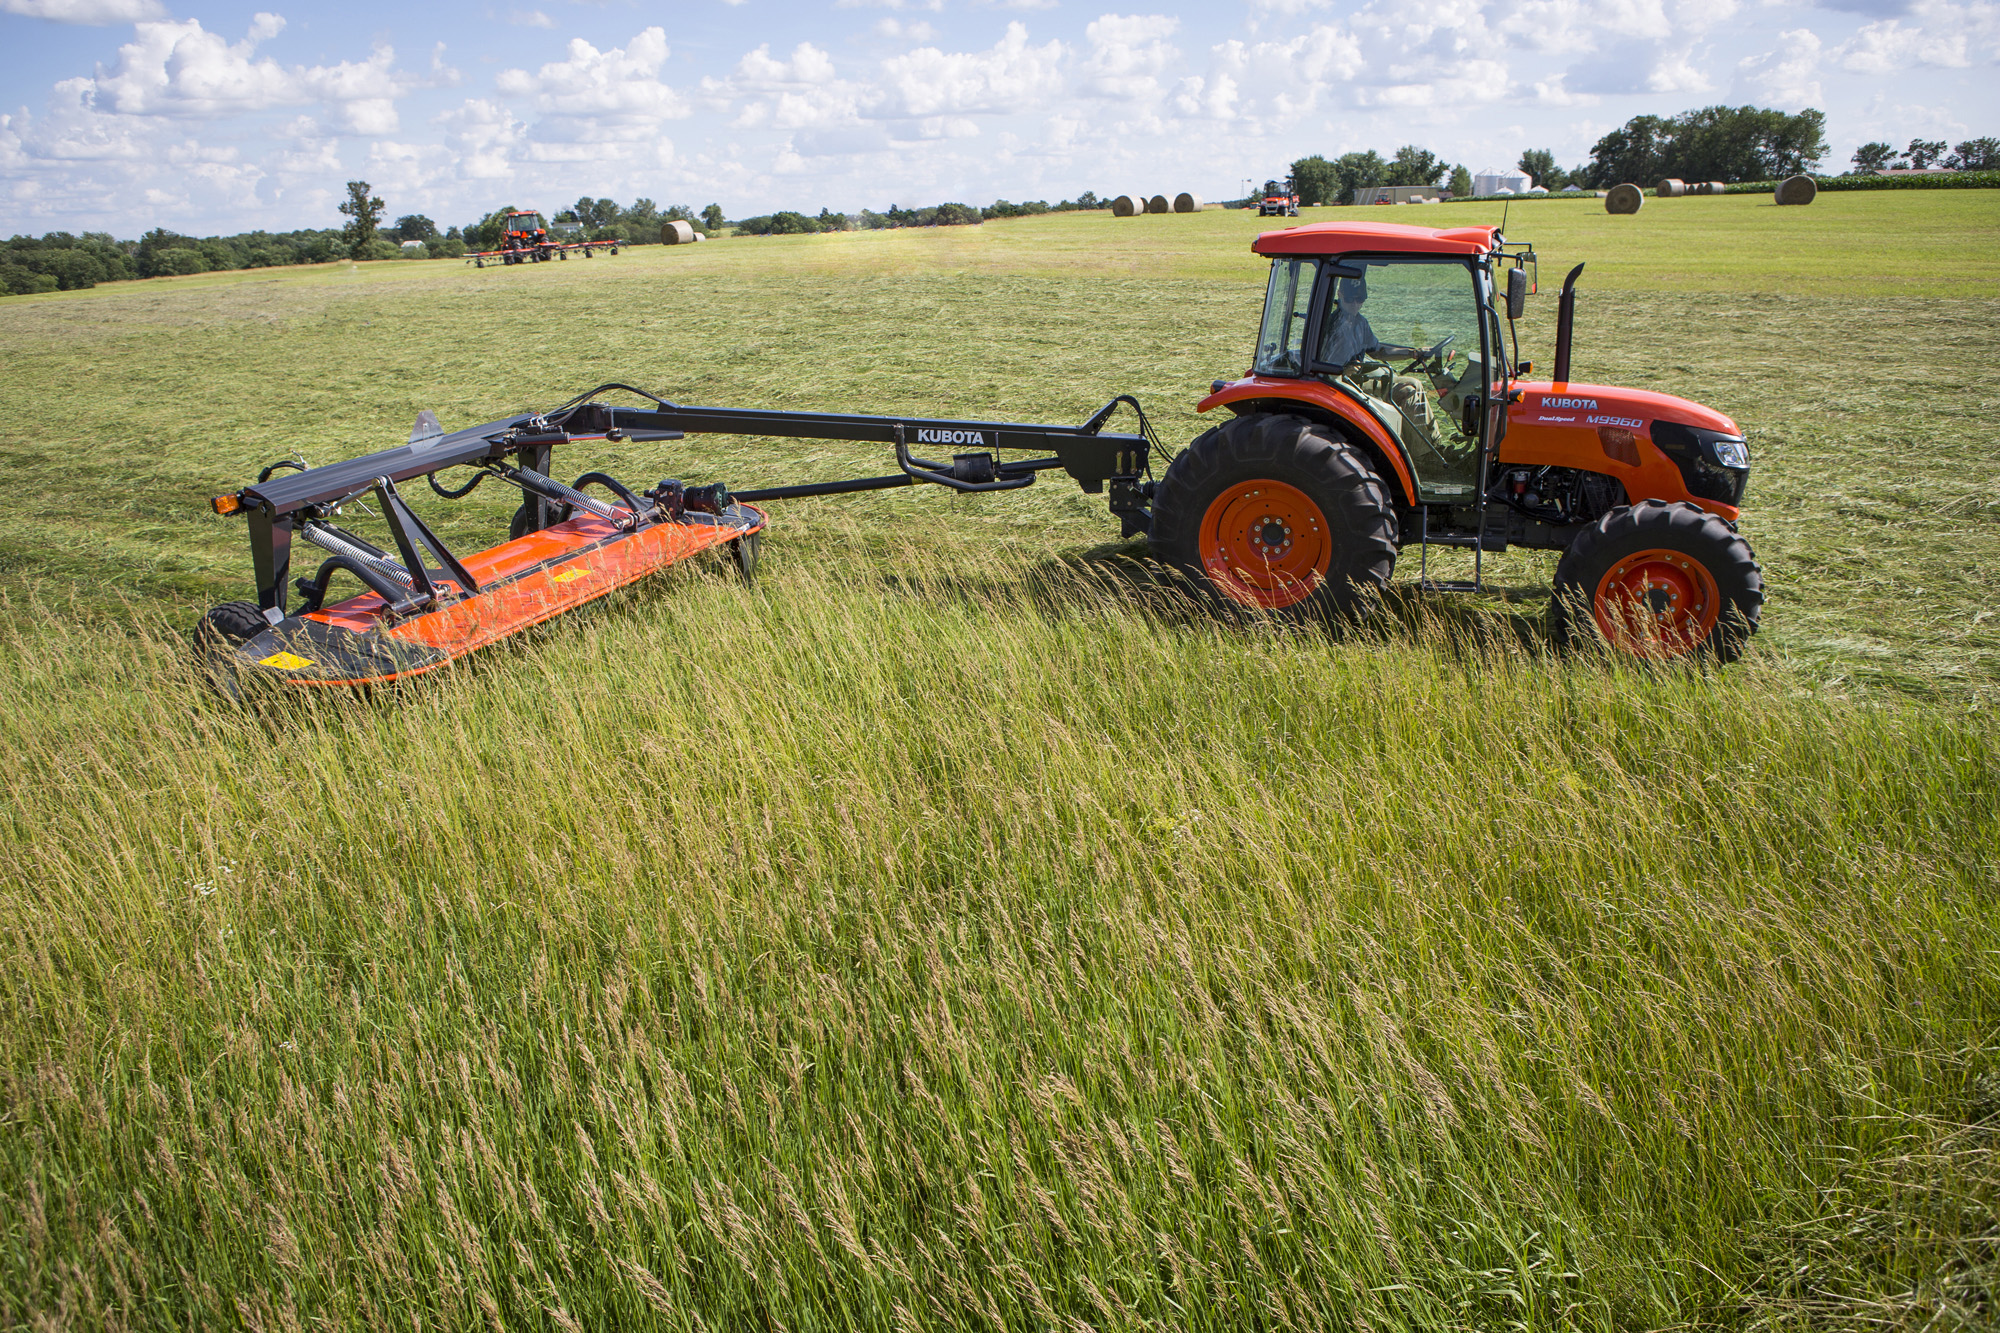 Tractor With Tools : New phase of kubota hay tools now available at dealerships